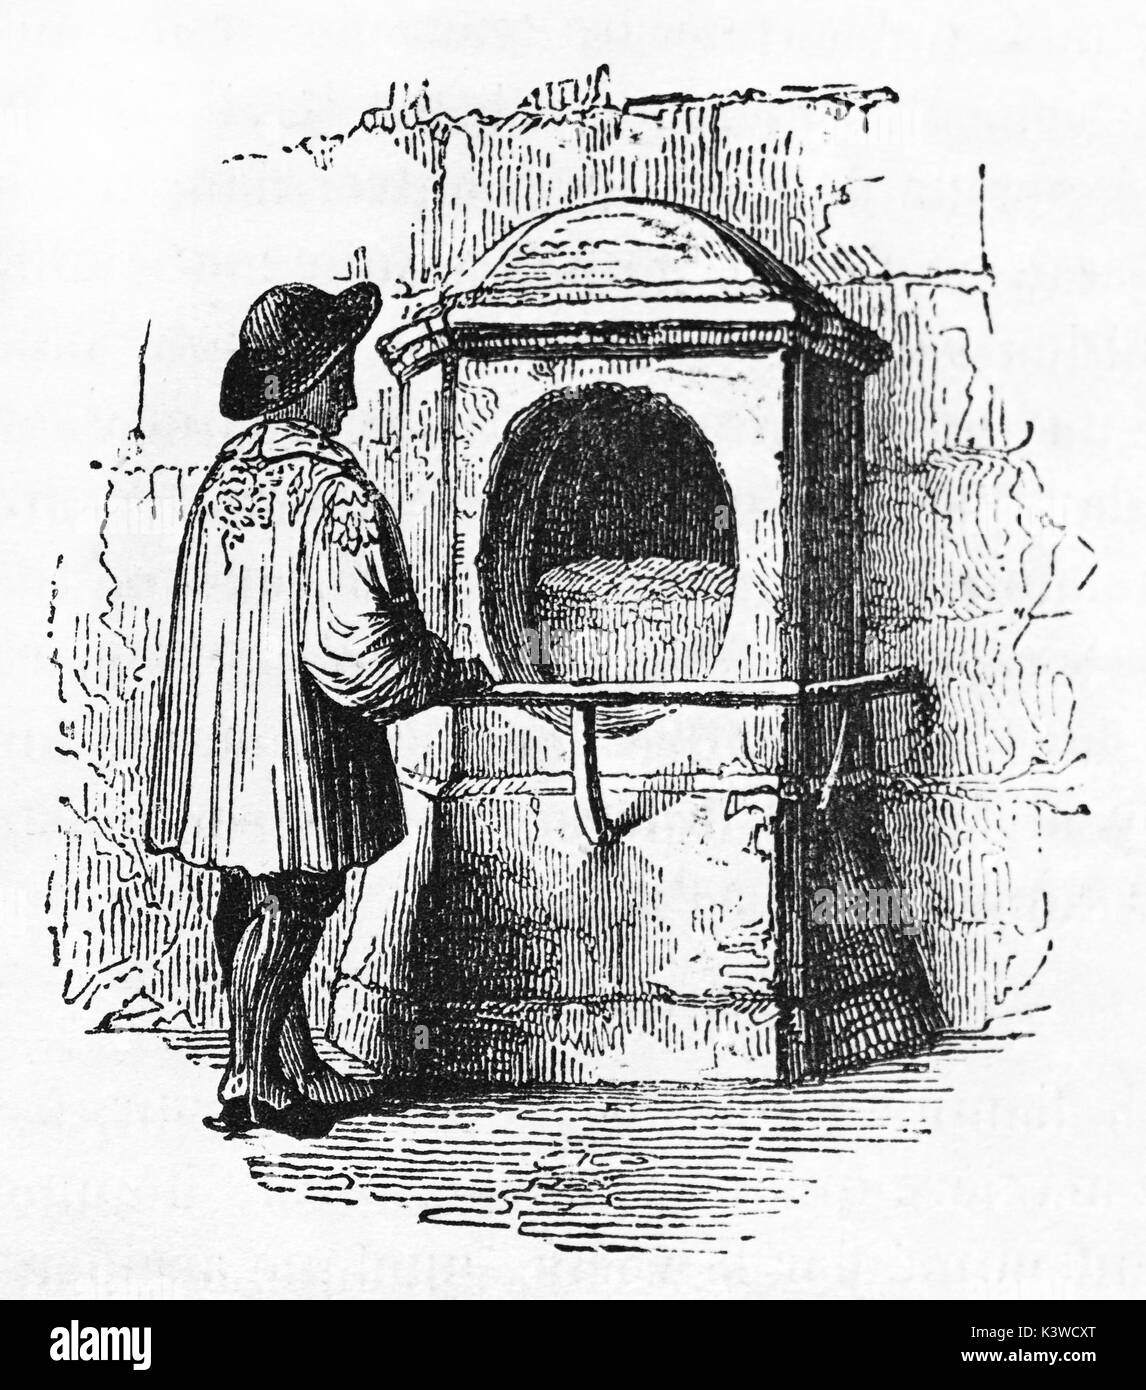 Old illustration of London stone, Cannon strett, London. By unidentified author, published on Magasin Pittoresque, Paris, 1841 - Stock Image